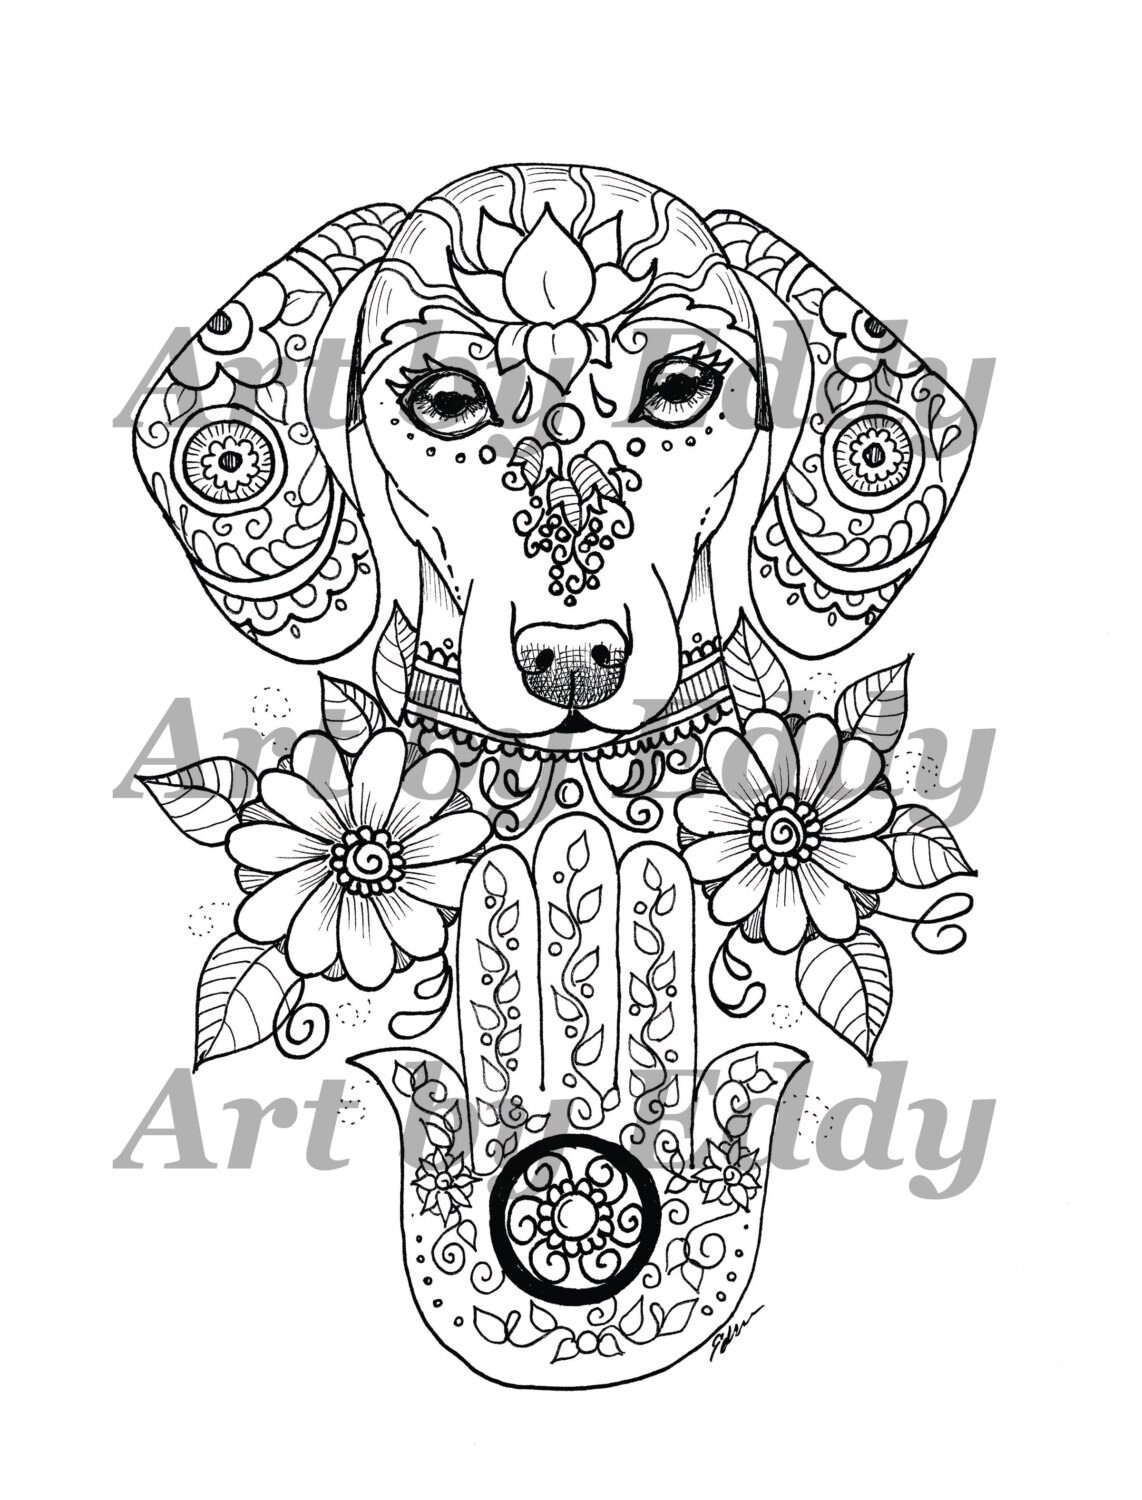 Art of Dachshund Single Coloring Page Hamsa Palm Doxie